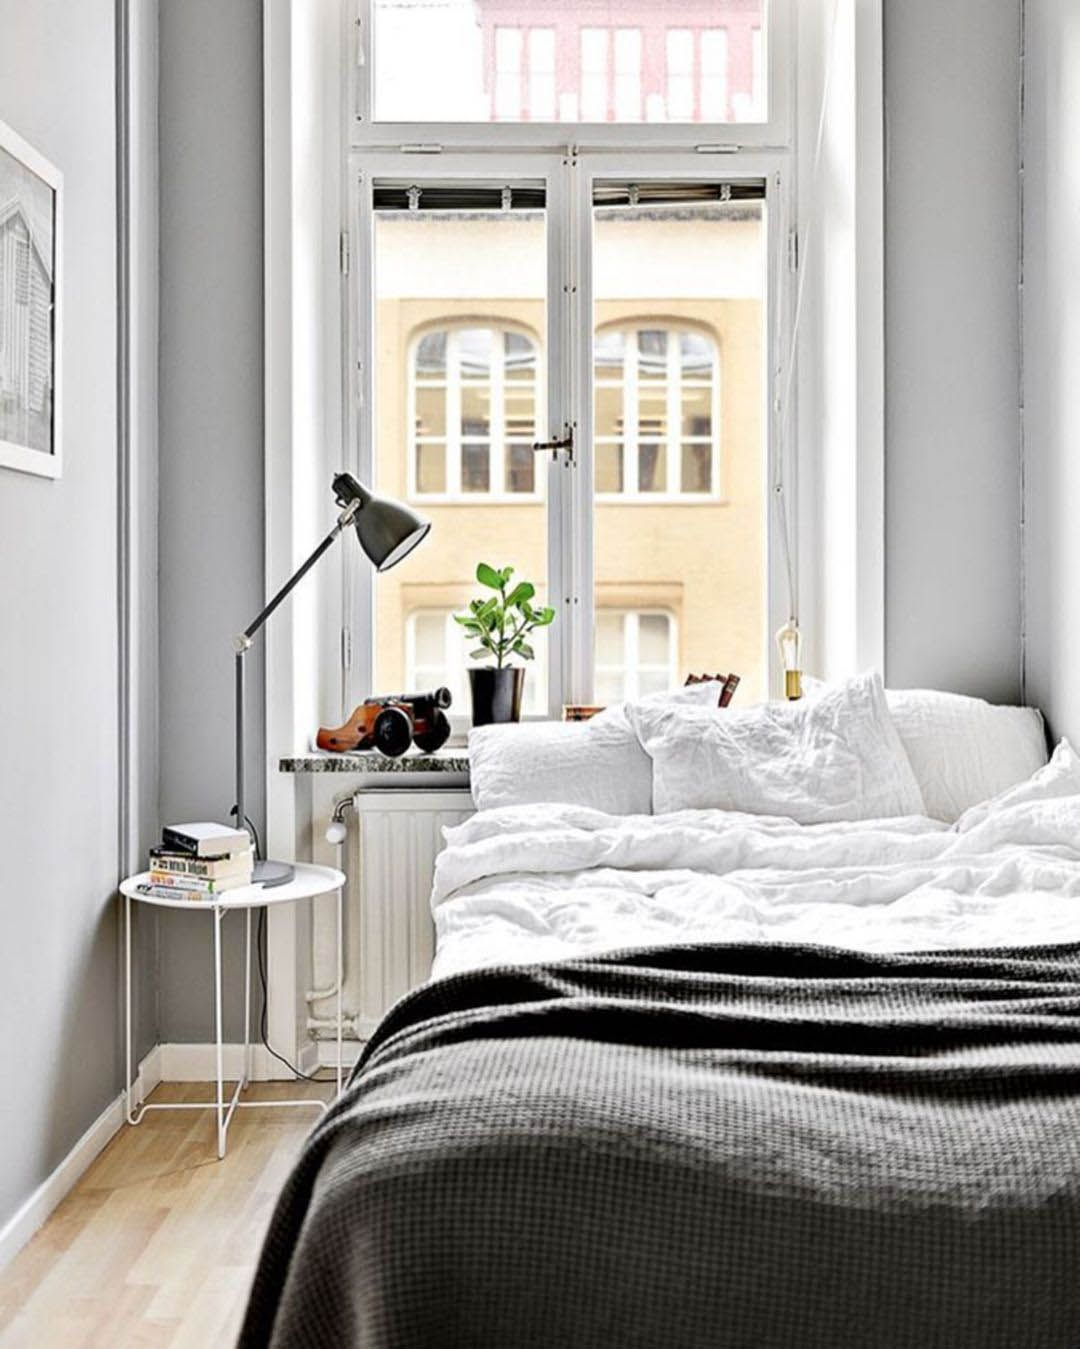 Minimalist Bedroom Ideas Perfect For Being On A Budget Small Apartment Bedrooms Small Bedroom Decor Simple Bedroom